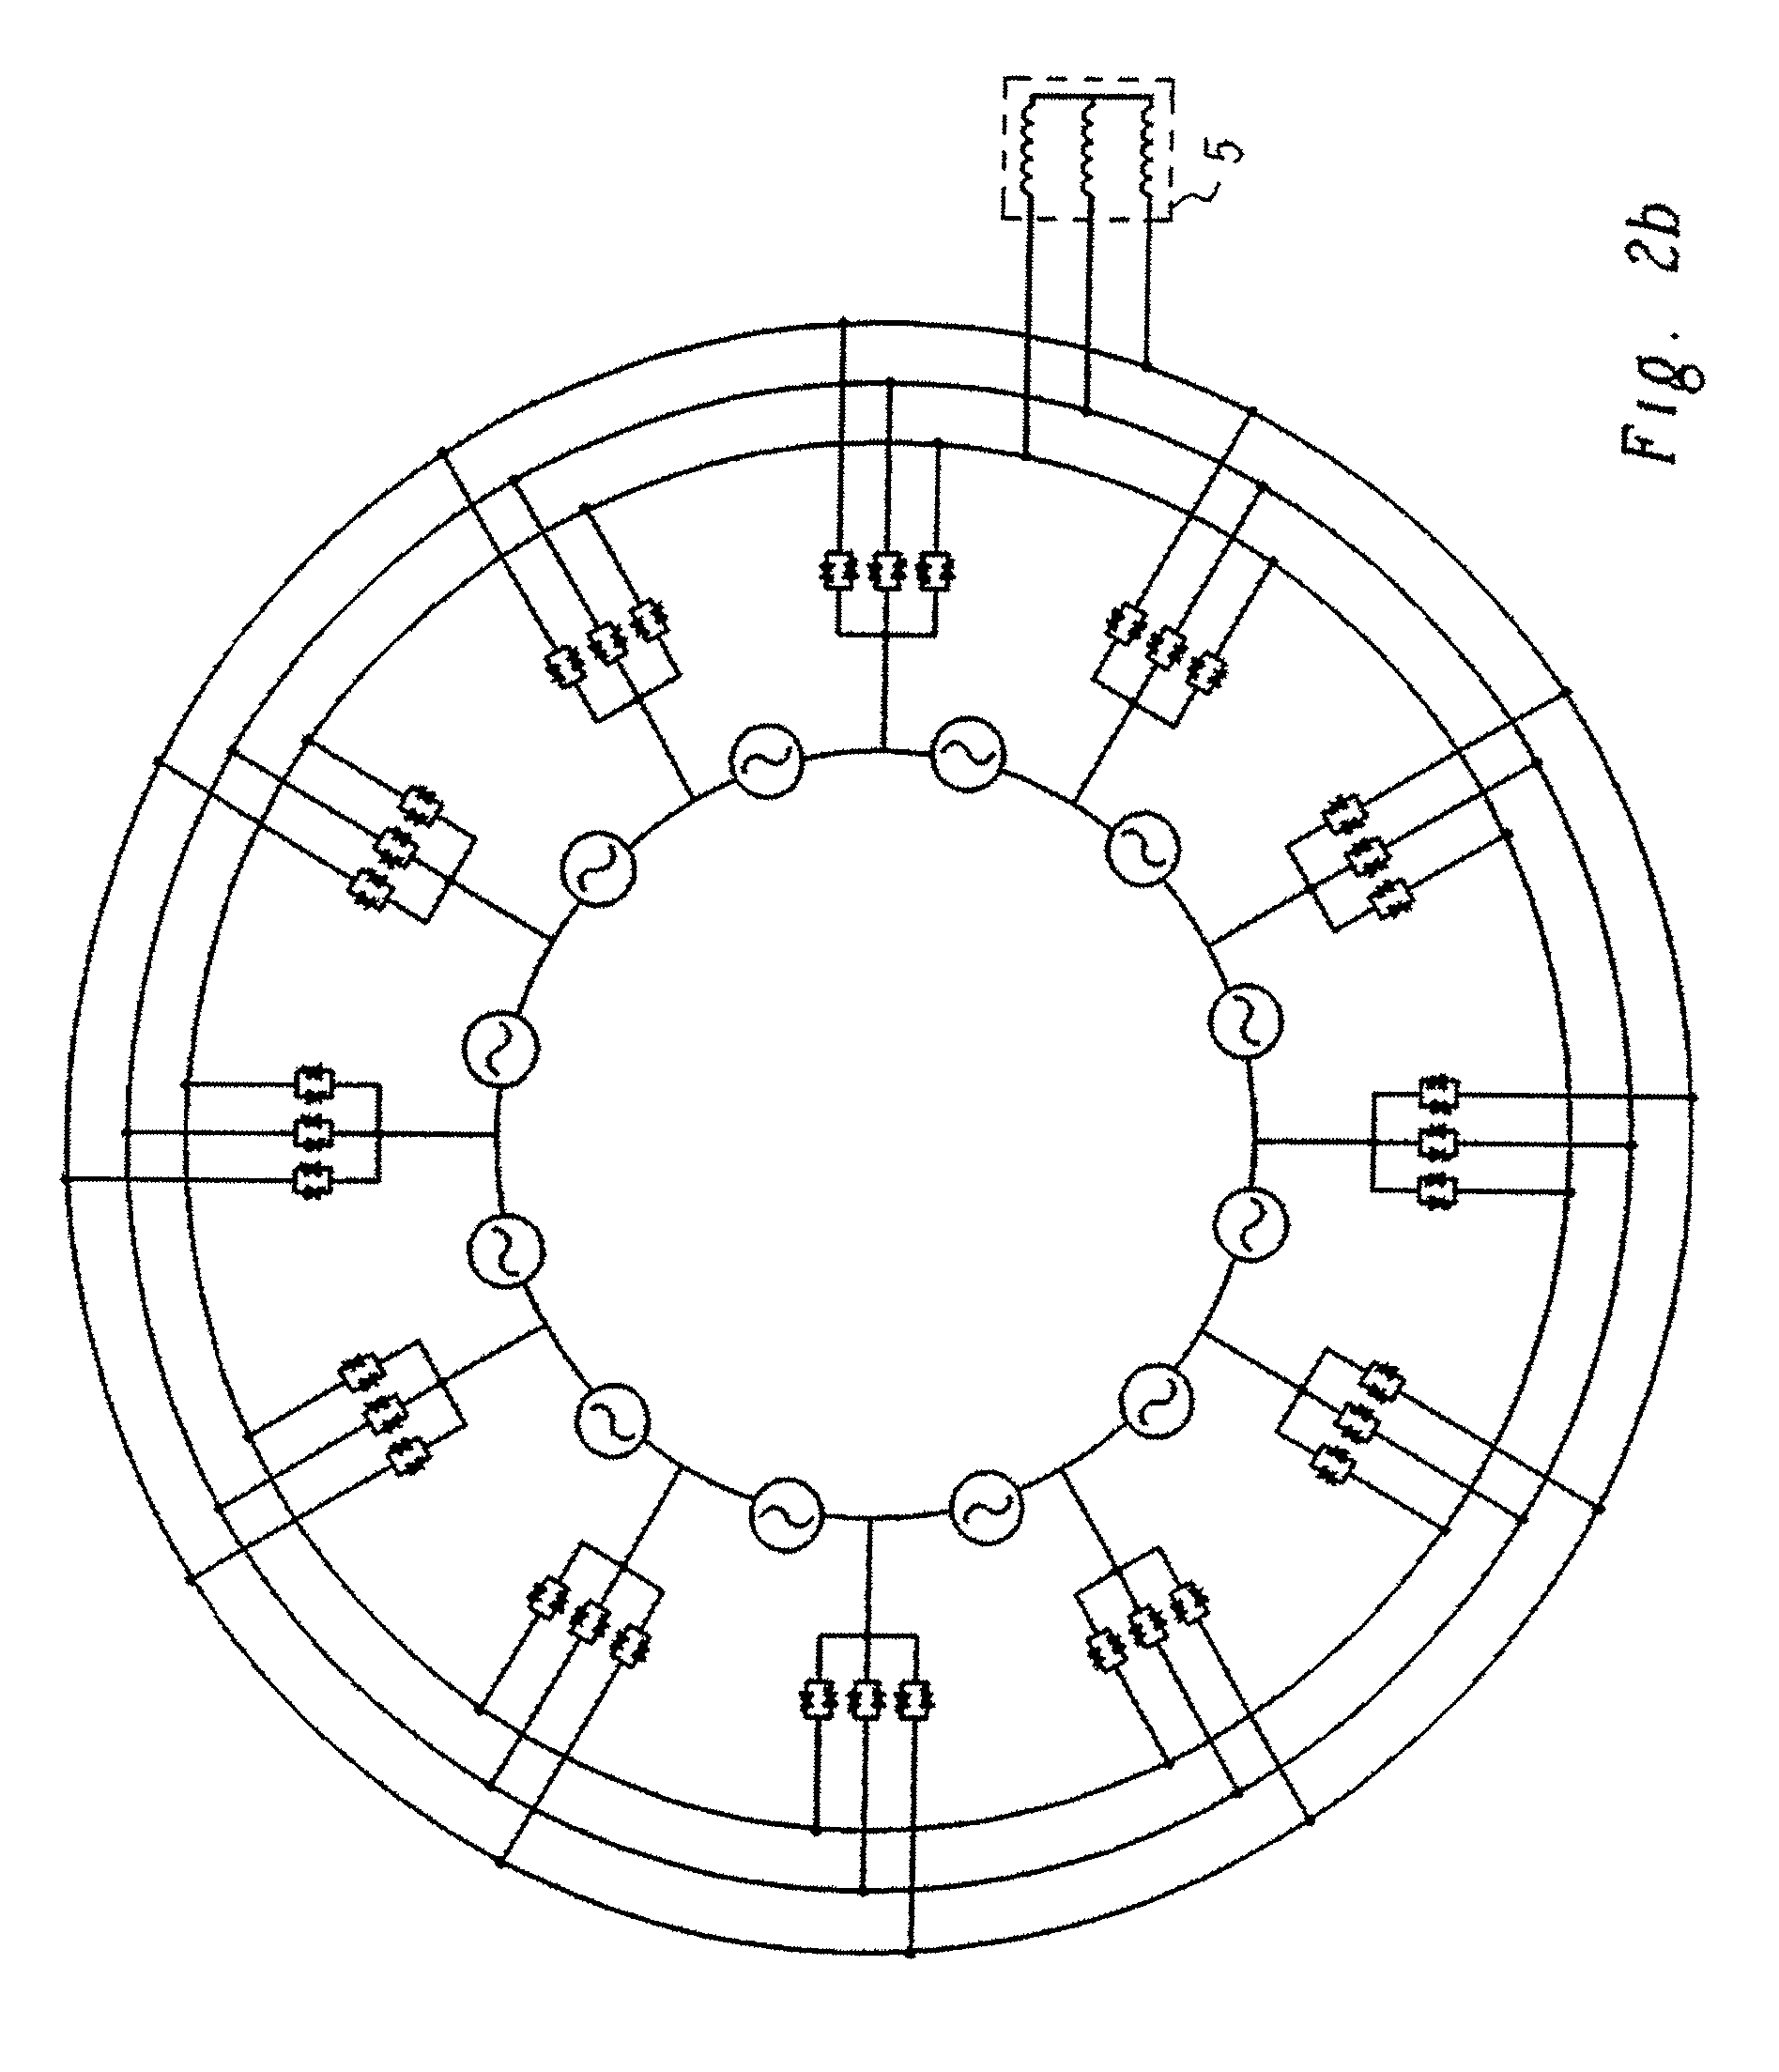 hight resolution of 3 phase generator wiring connections single phase motor connections diagram 3 phase generator wiring three phase